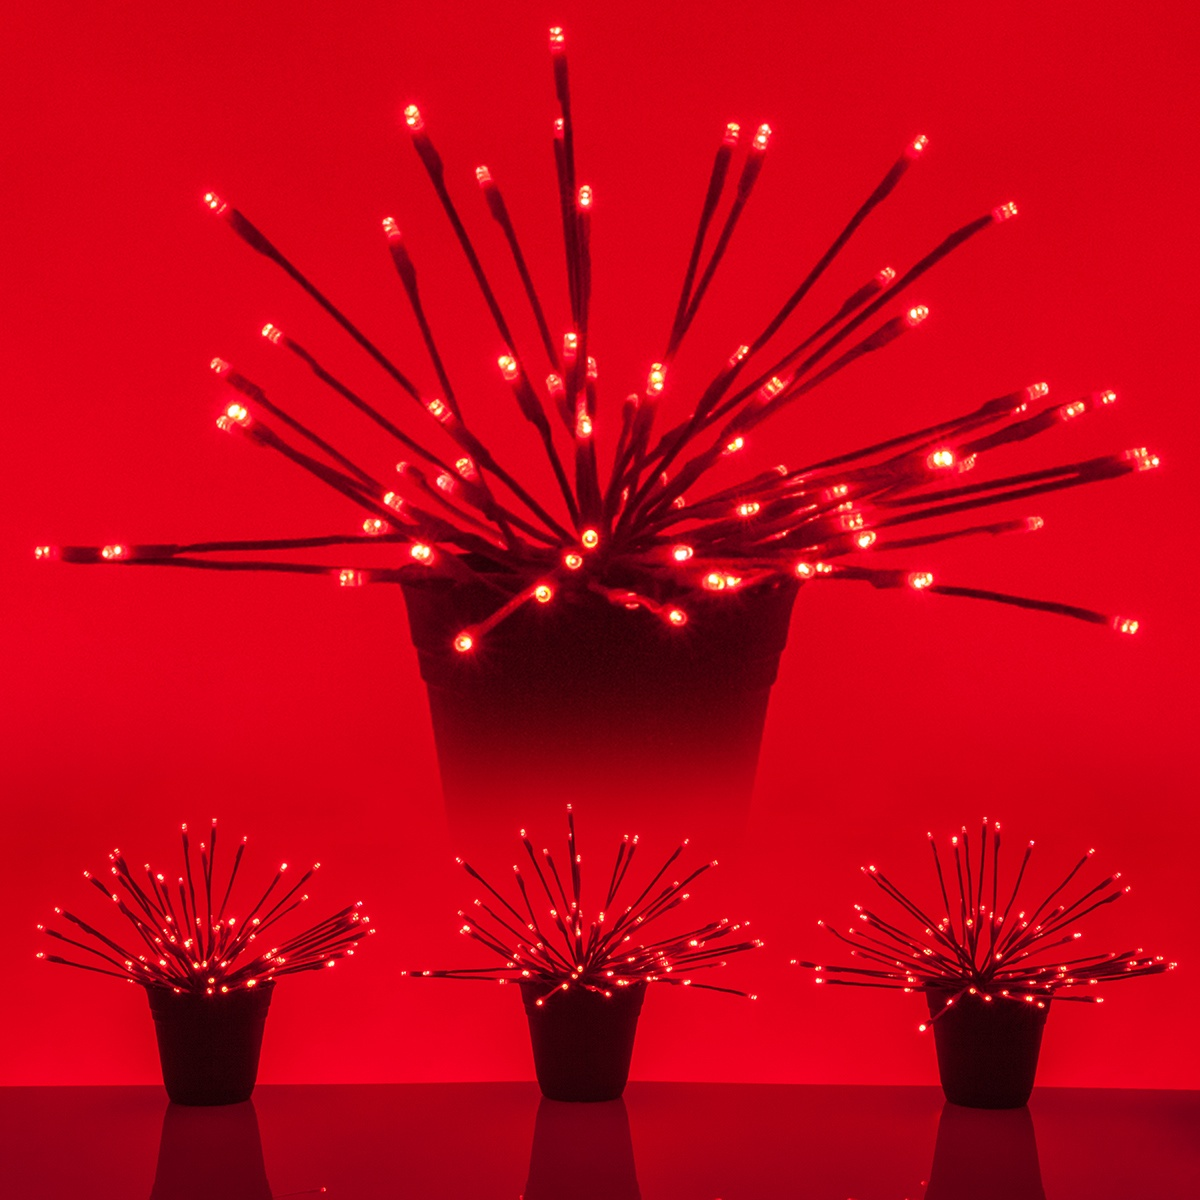 Red Starburst Led Lighted Branches Red Twinkle Lights 3